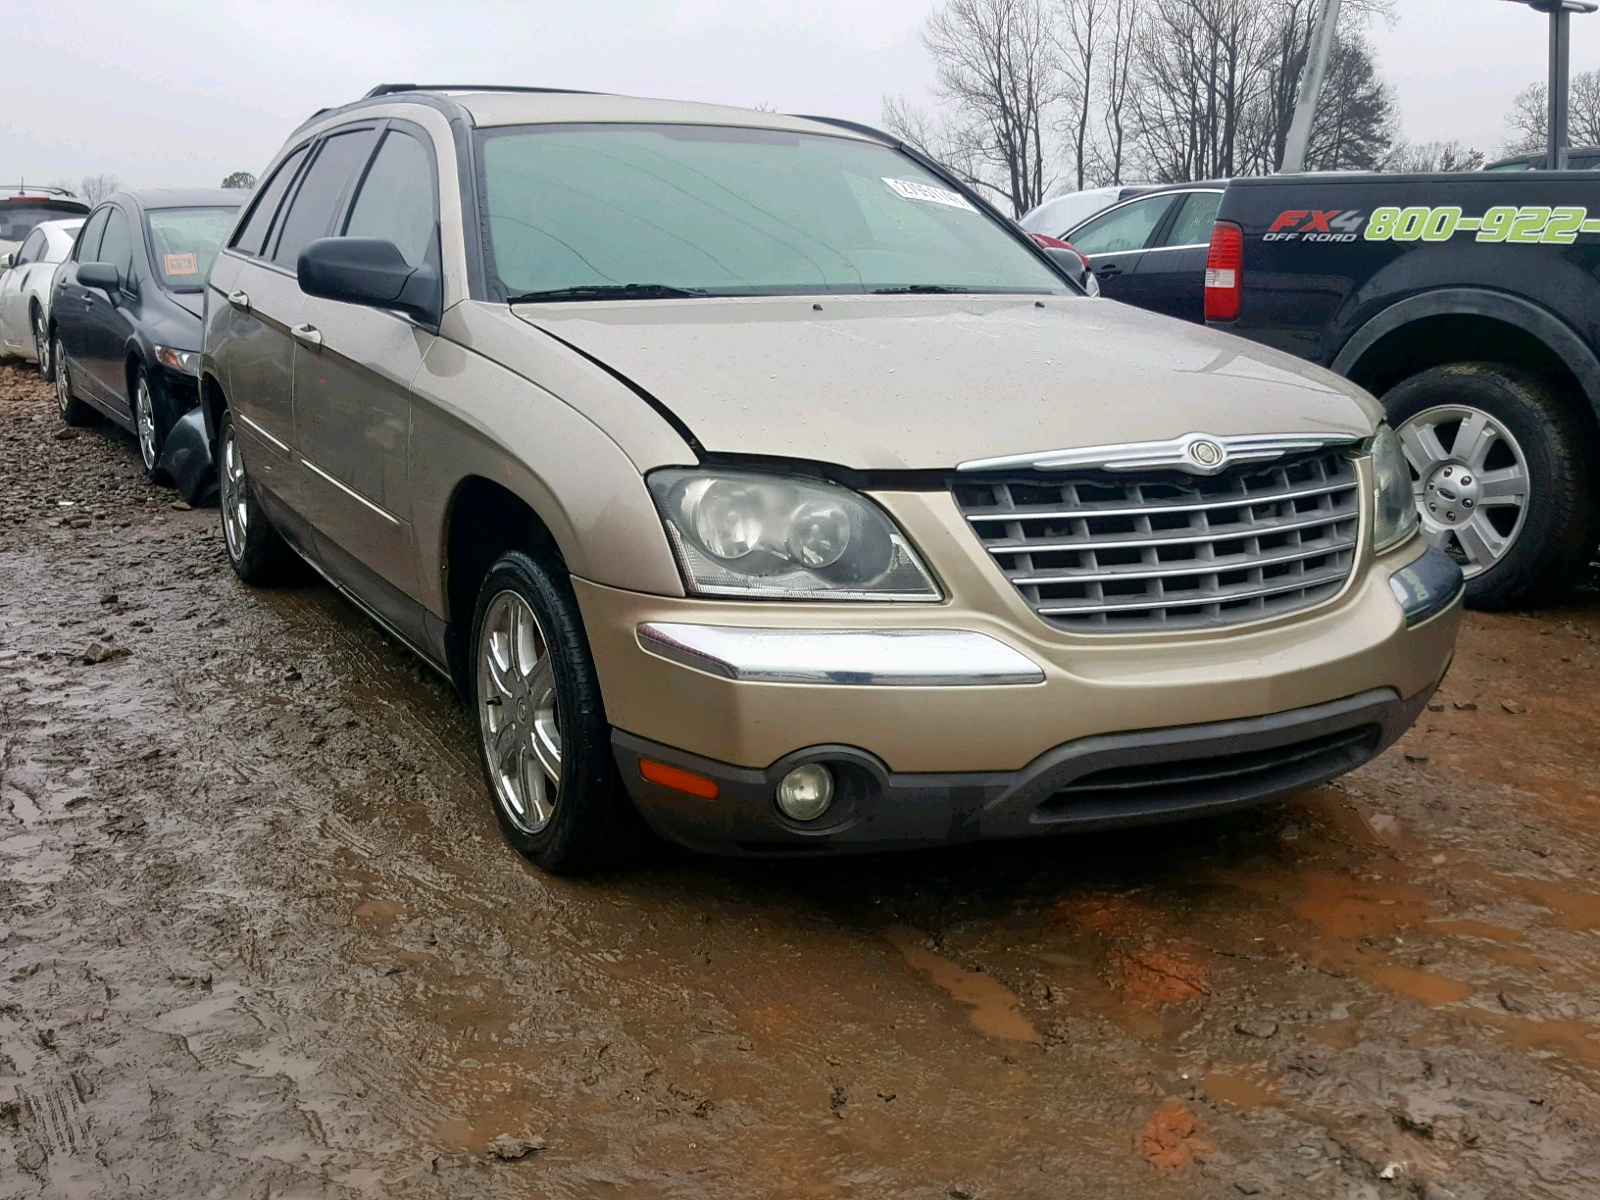 Salvage 2004 Chrysler PACIFICA for sale